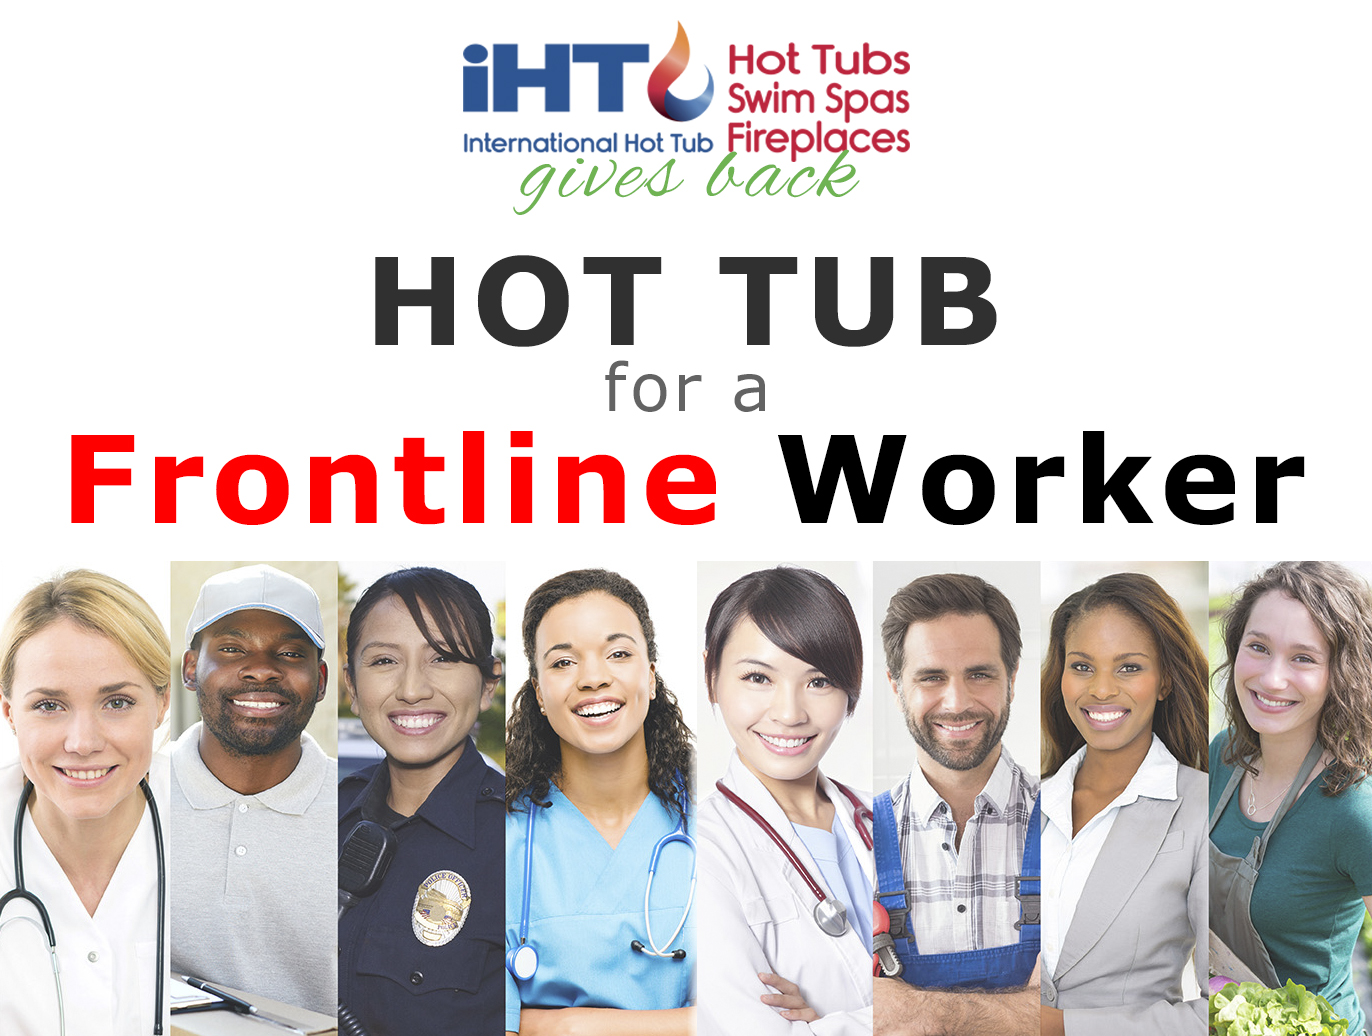 Hot tub giveaway to Frontline Workders